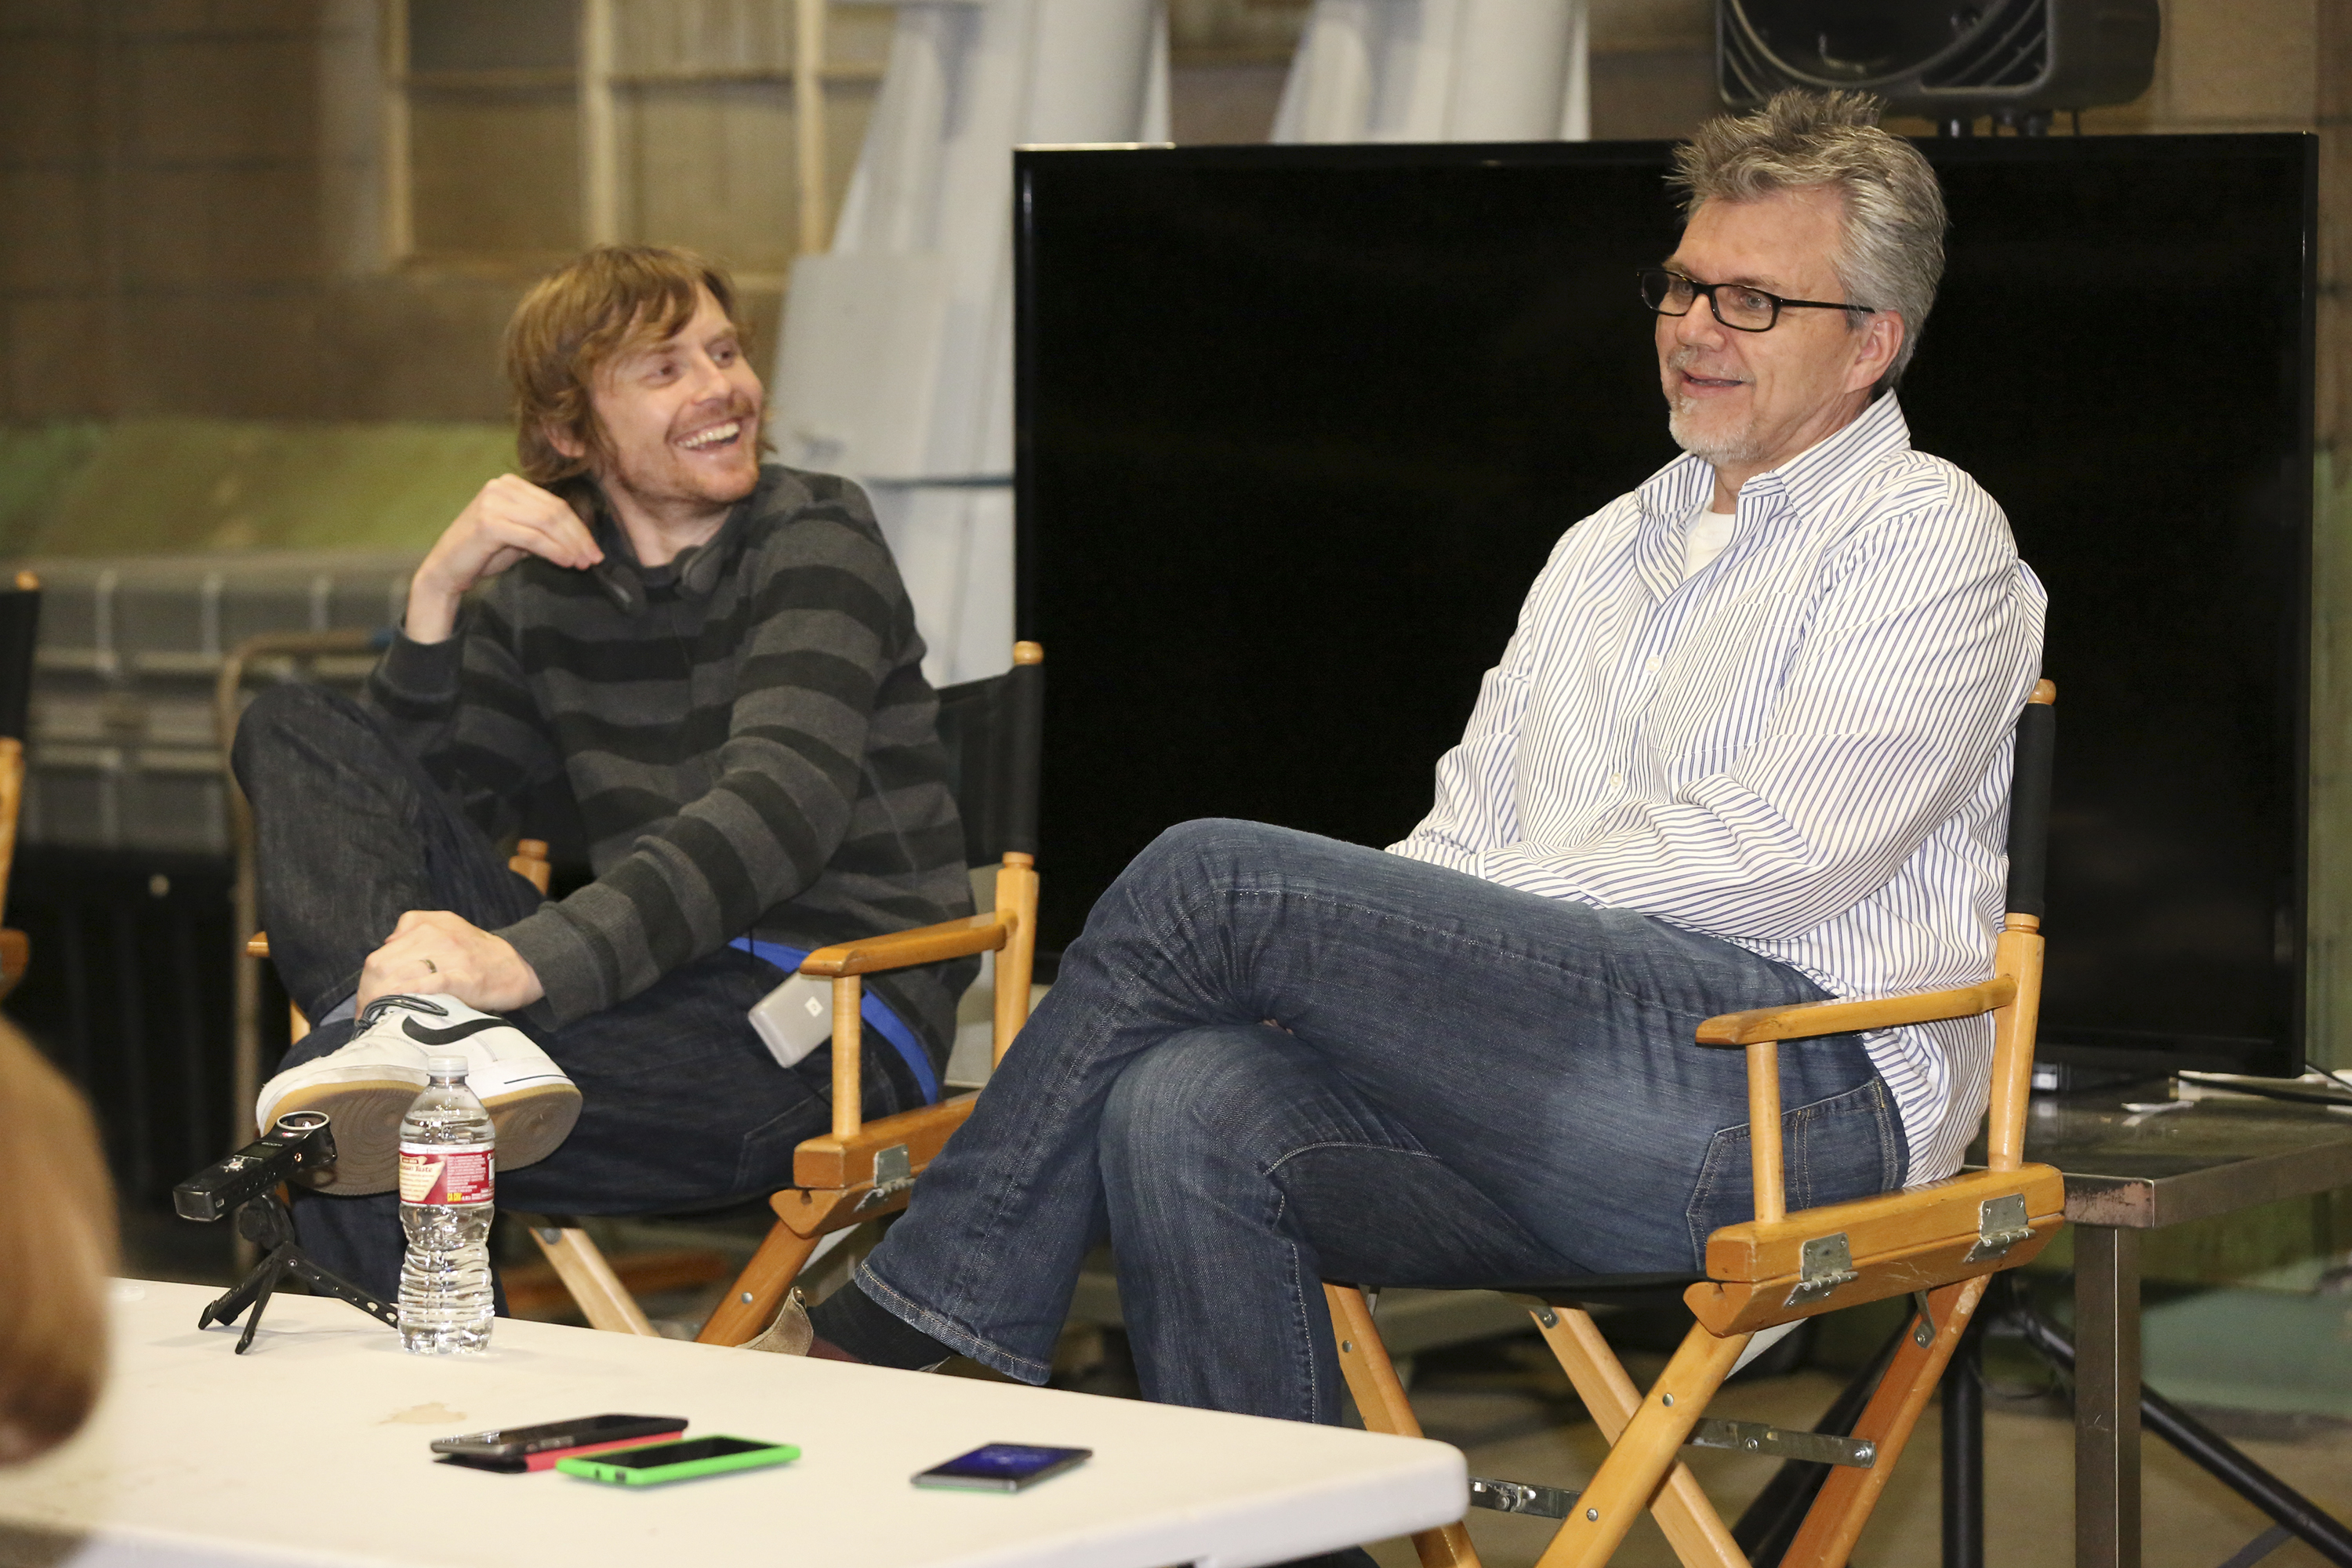 Behind the Scenes of #AgentsOfSHIELD with Jed Whedon and Jeffrey Bell